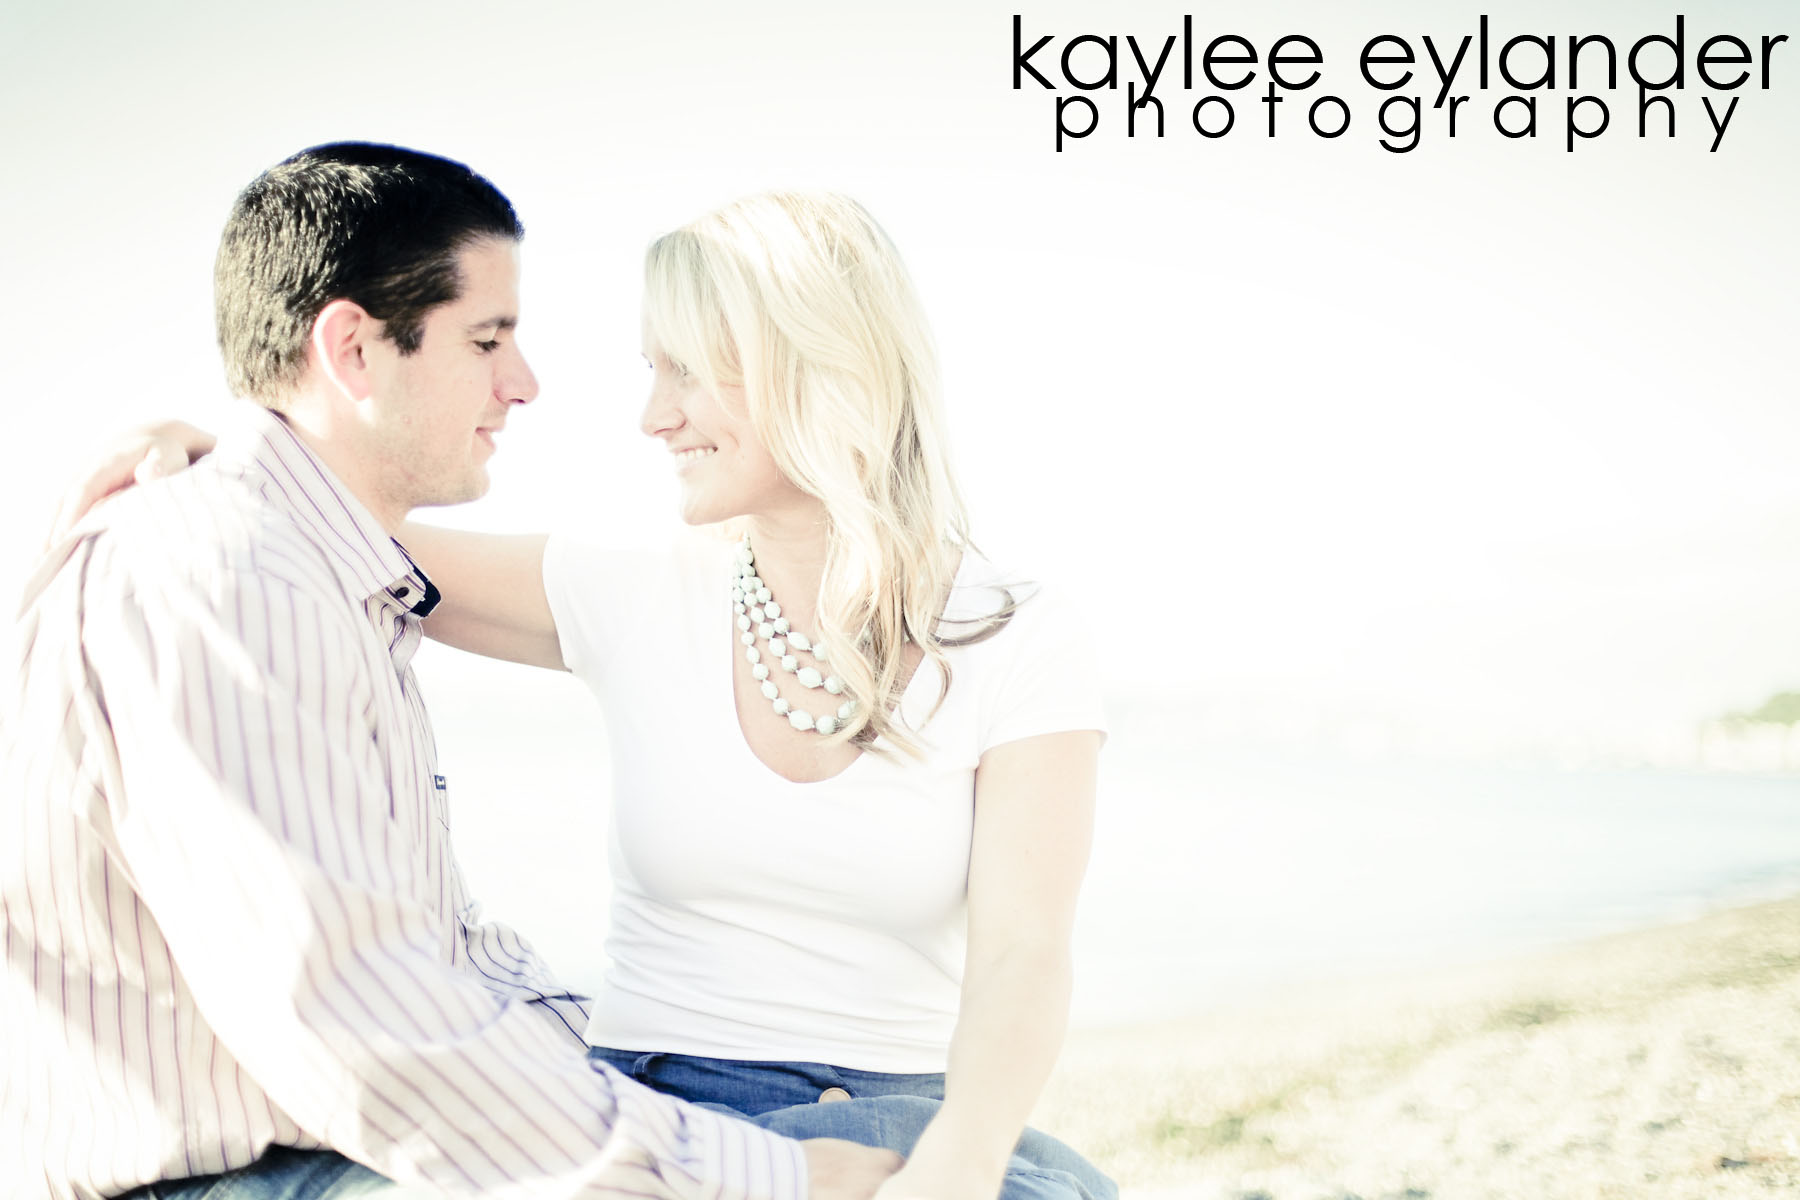 sarah adam web 15 2 Engagement Session at Alki Beach | Sun & Sand make me happy! | Kaylee Eylander